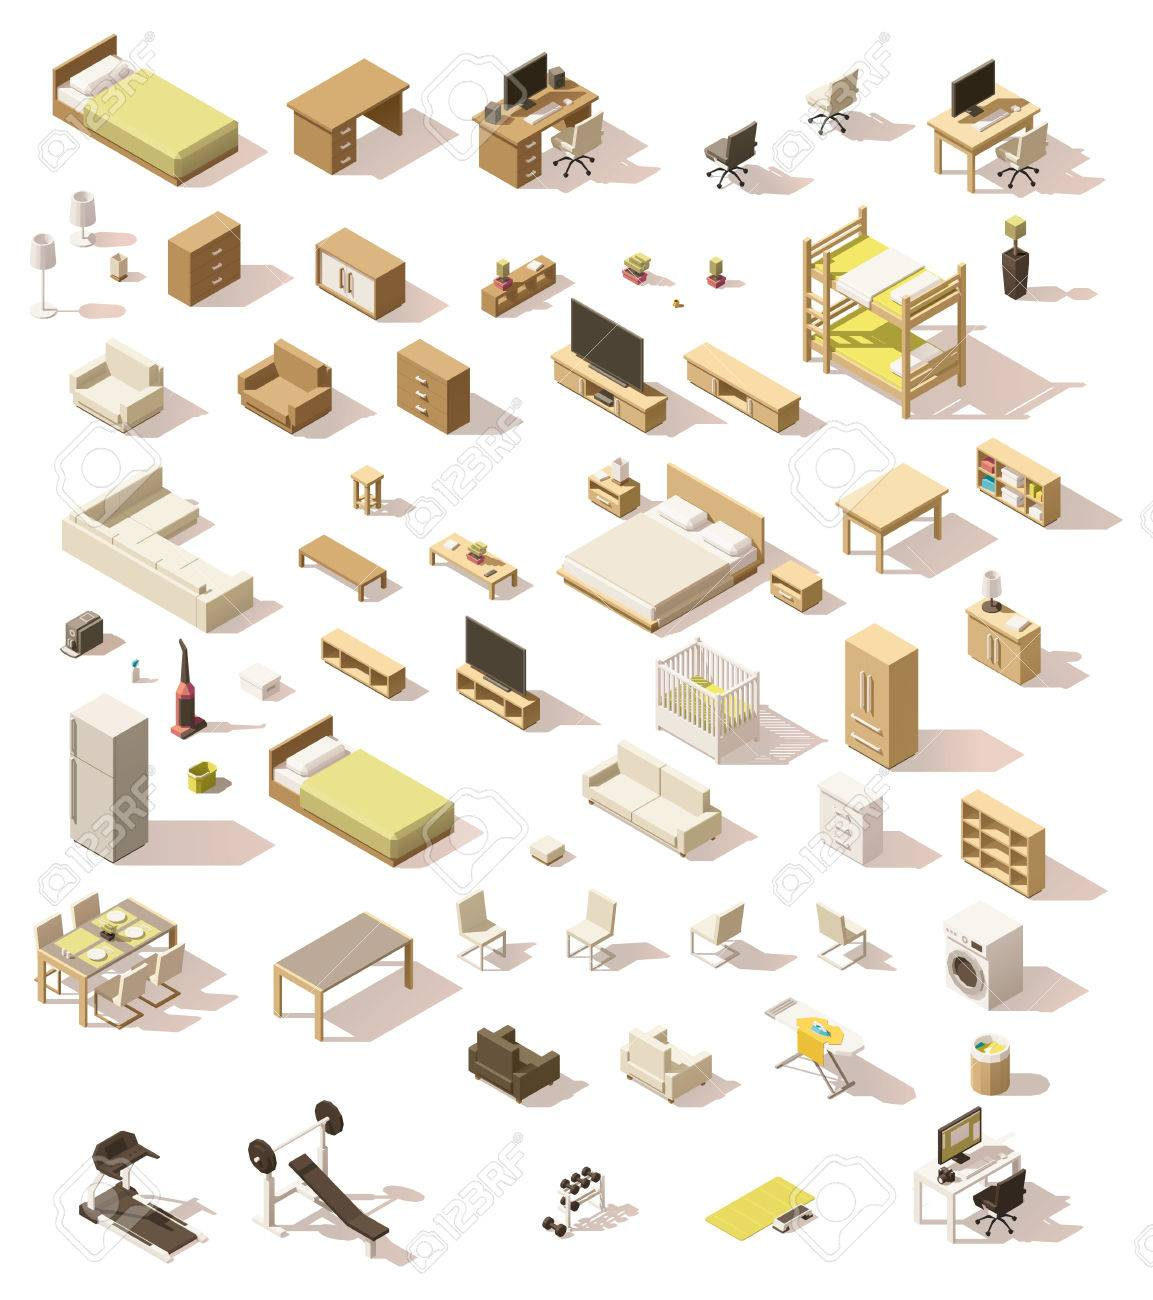 Vector isometric low poly domestic furniture set - 69256935